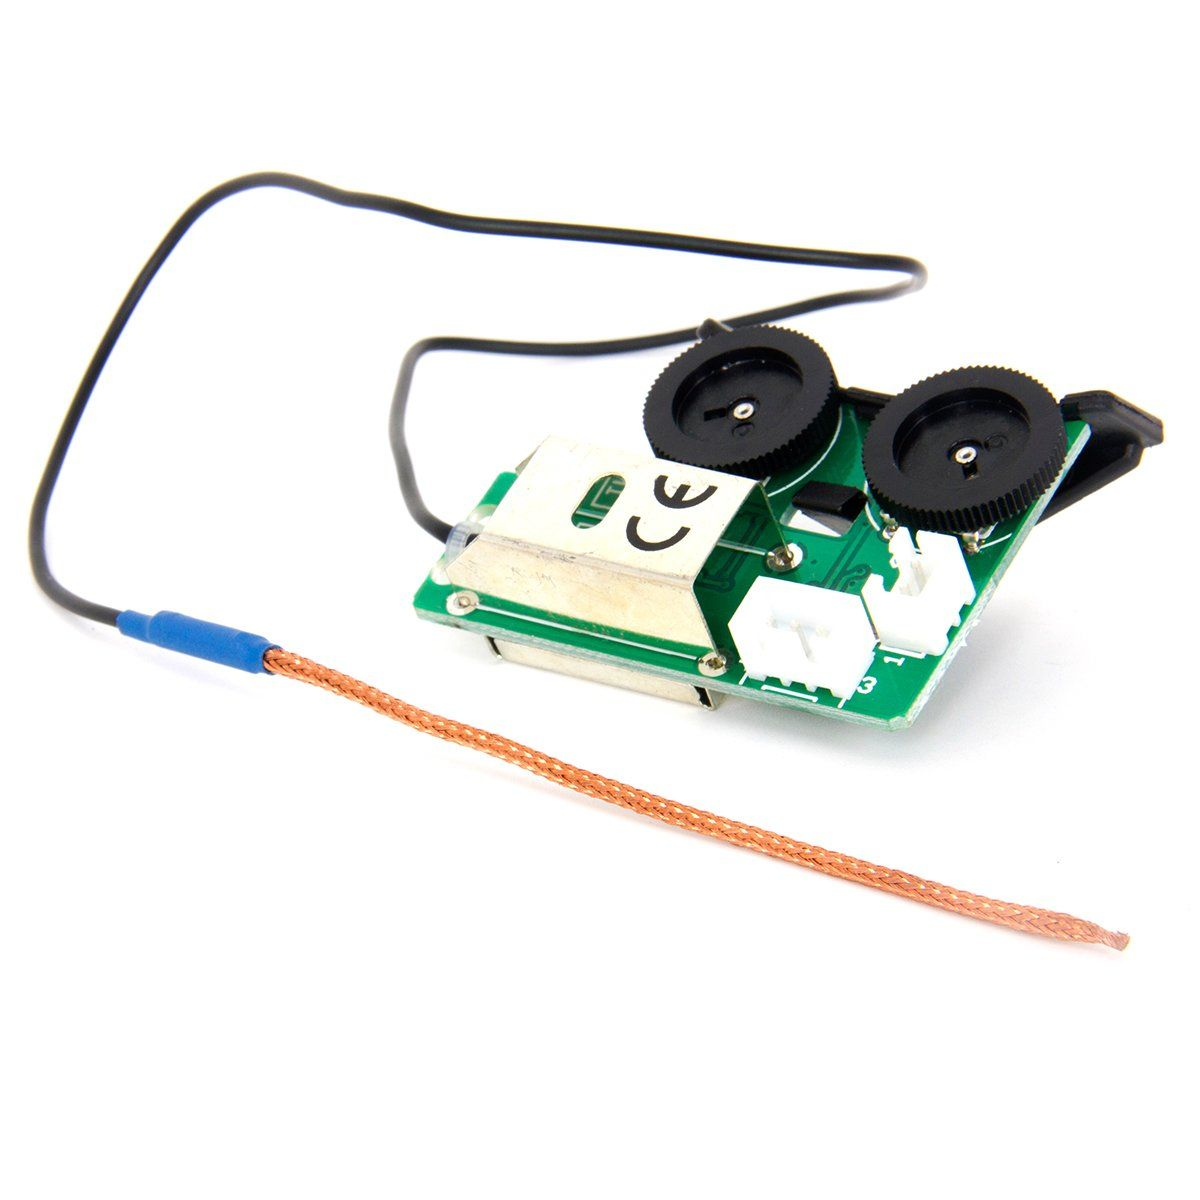 Kmise Under Saddle Piezo Pickup Onboard Preamp System For Acoustic Guitar To View Further For This Item Visit The Image Li Acoustic Guitar Guitar Acoustic